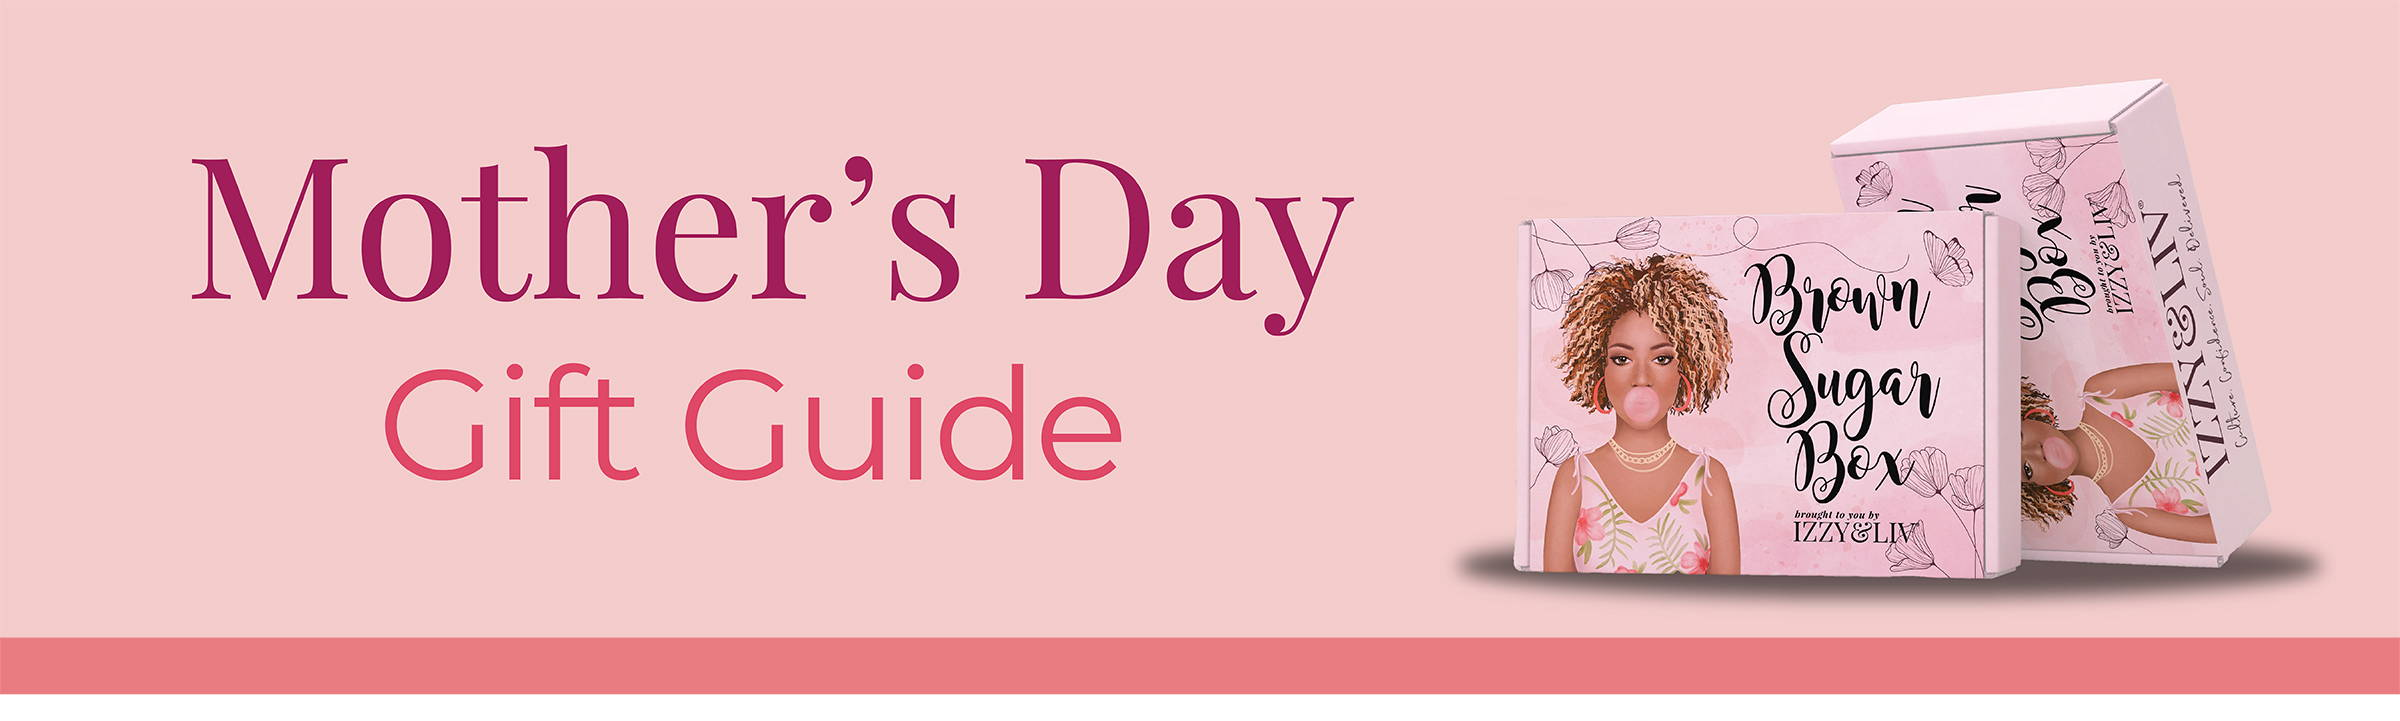 Shop The Mother's Day Gift Guide - Header